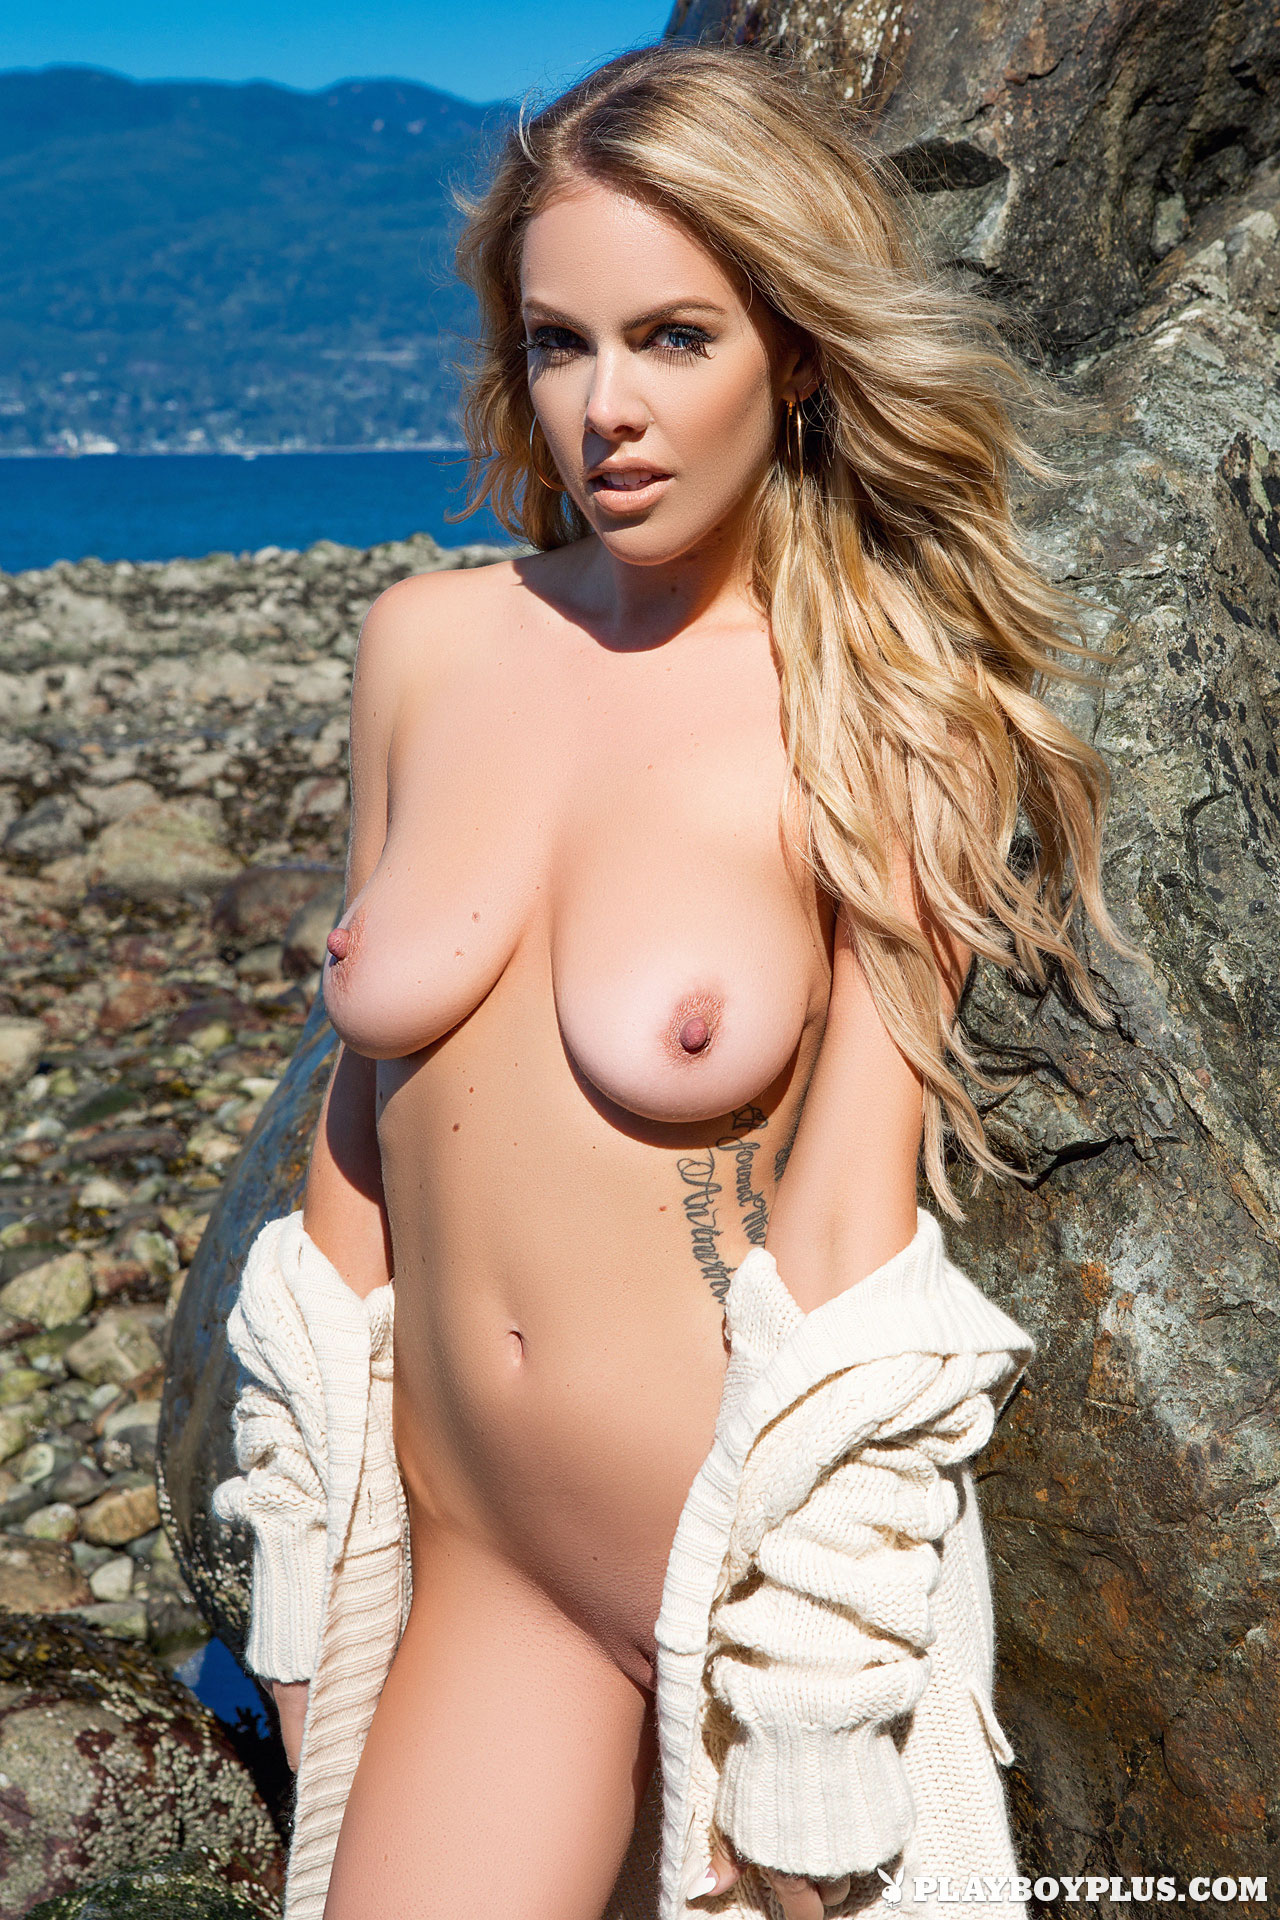 Heidi hamels nude pictures — pic 8